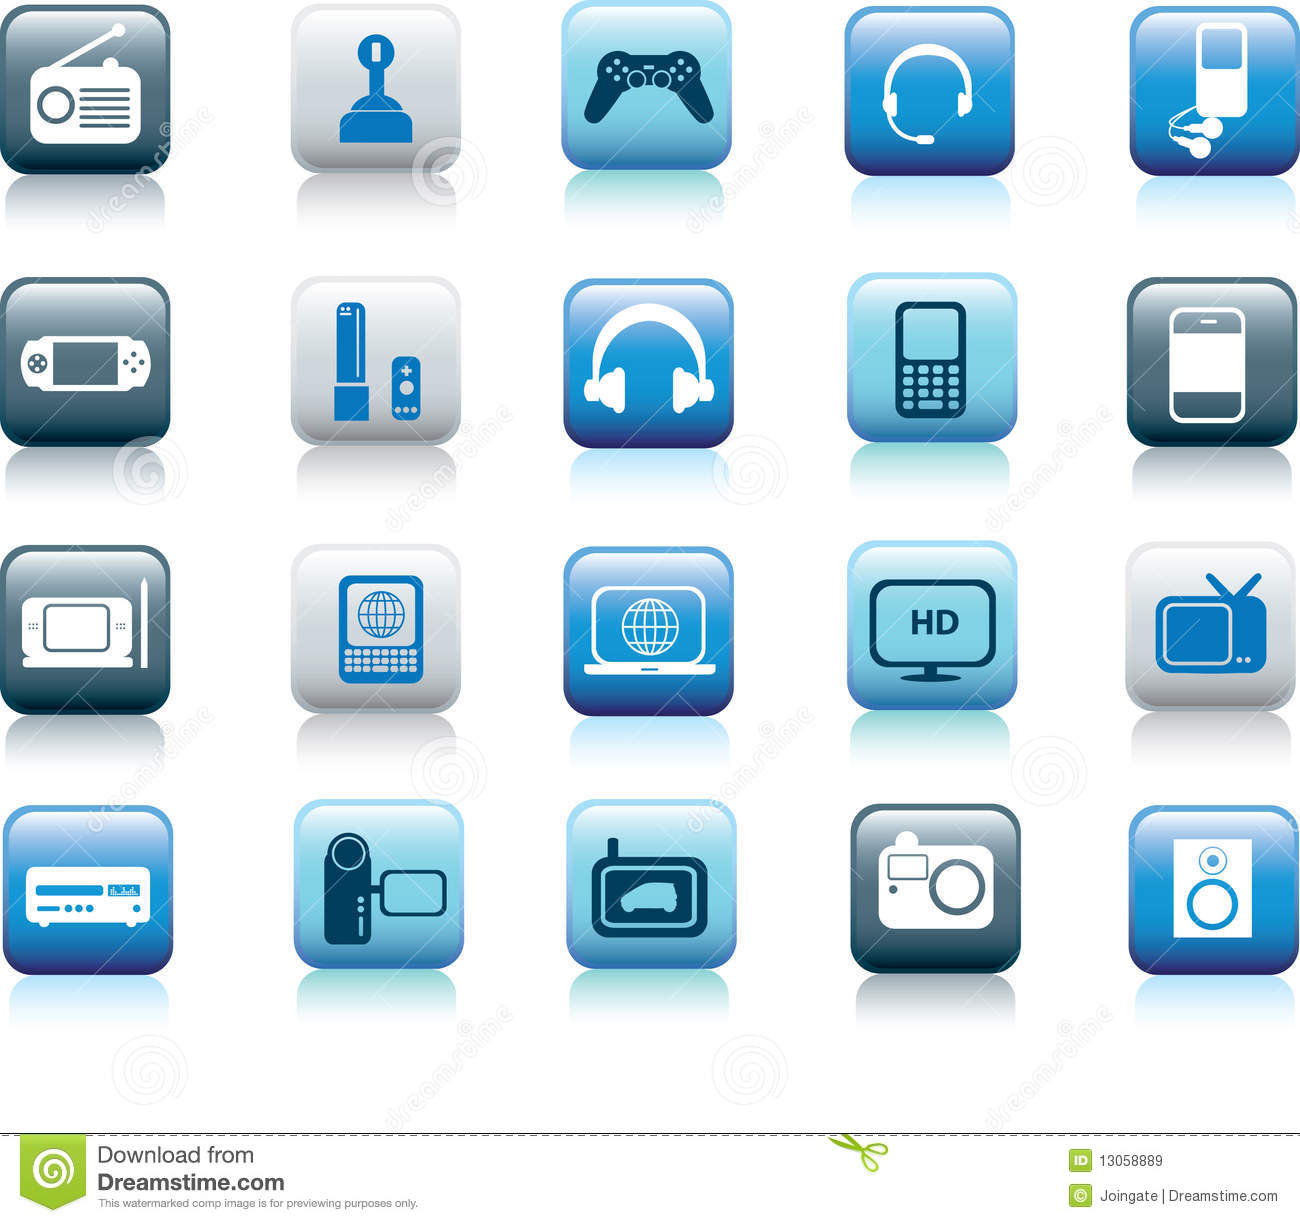 Electronic icon buttons stock vector. Illustration of speaker - 13058889